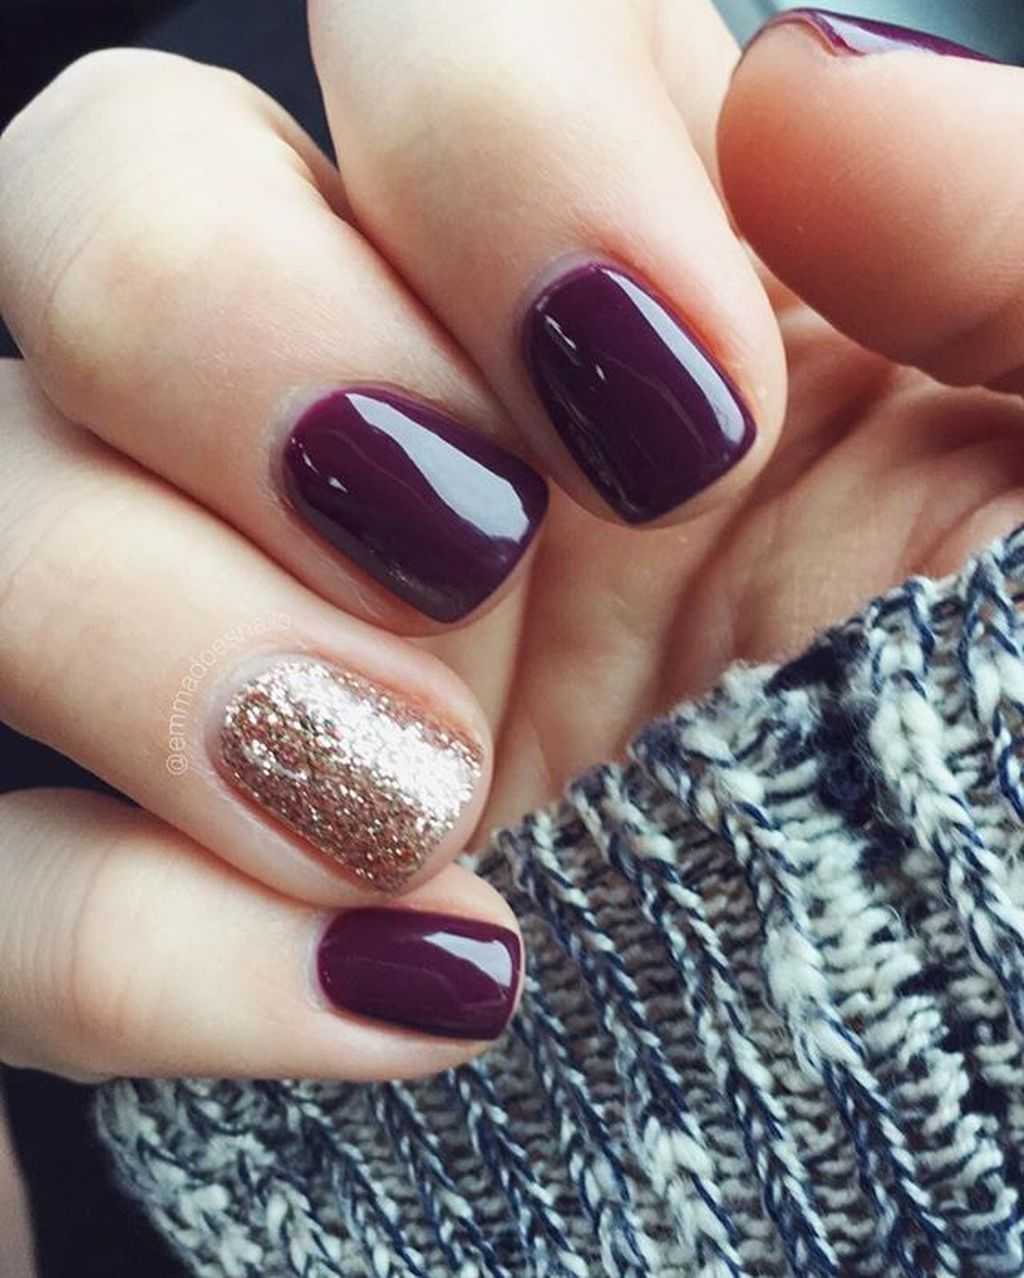 78 Eye Catching Fall Nails Art Design Inspirations Ideas | Design ...